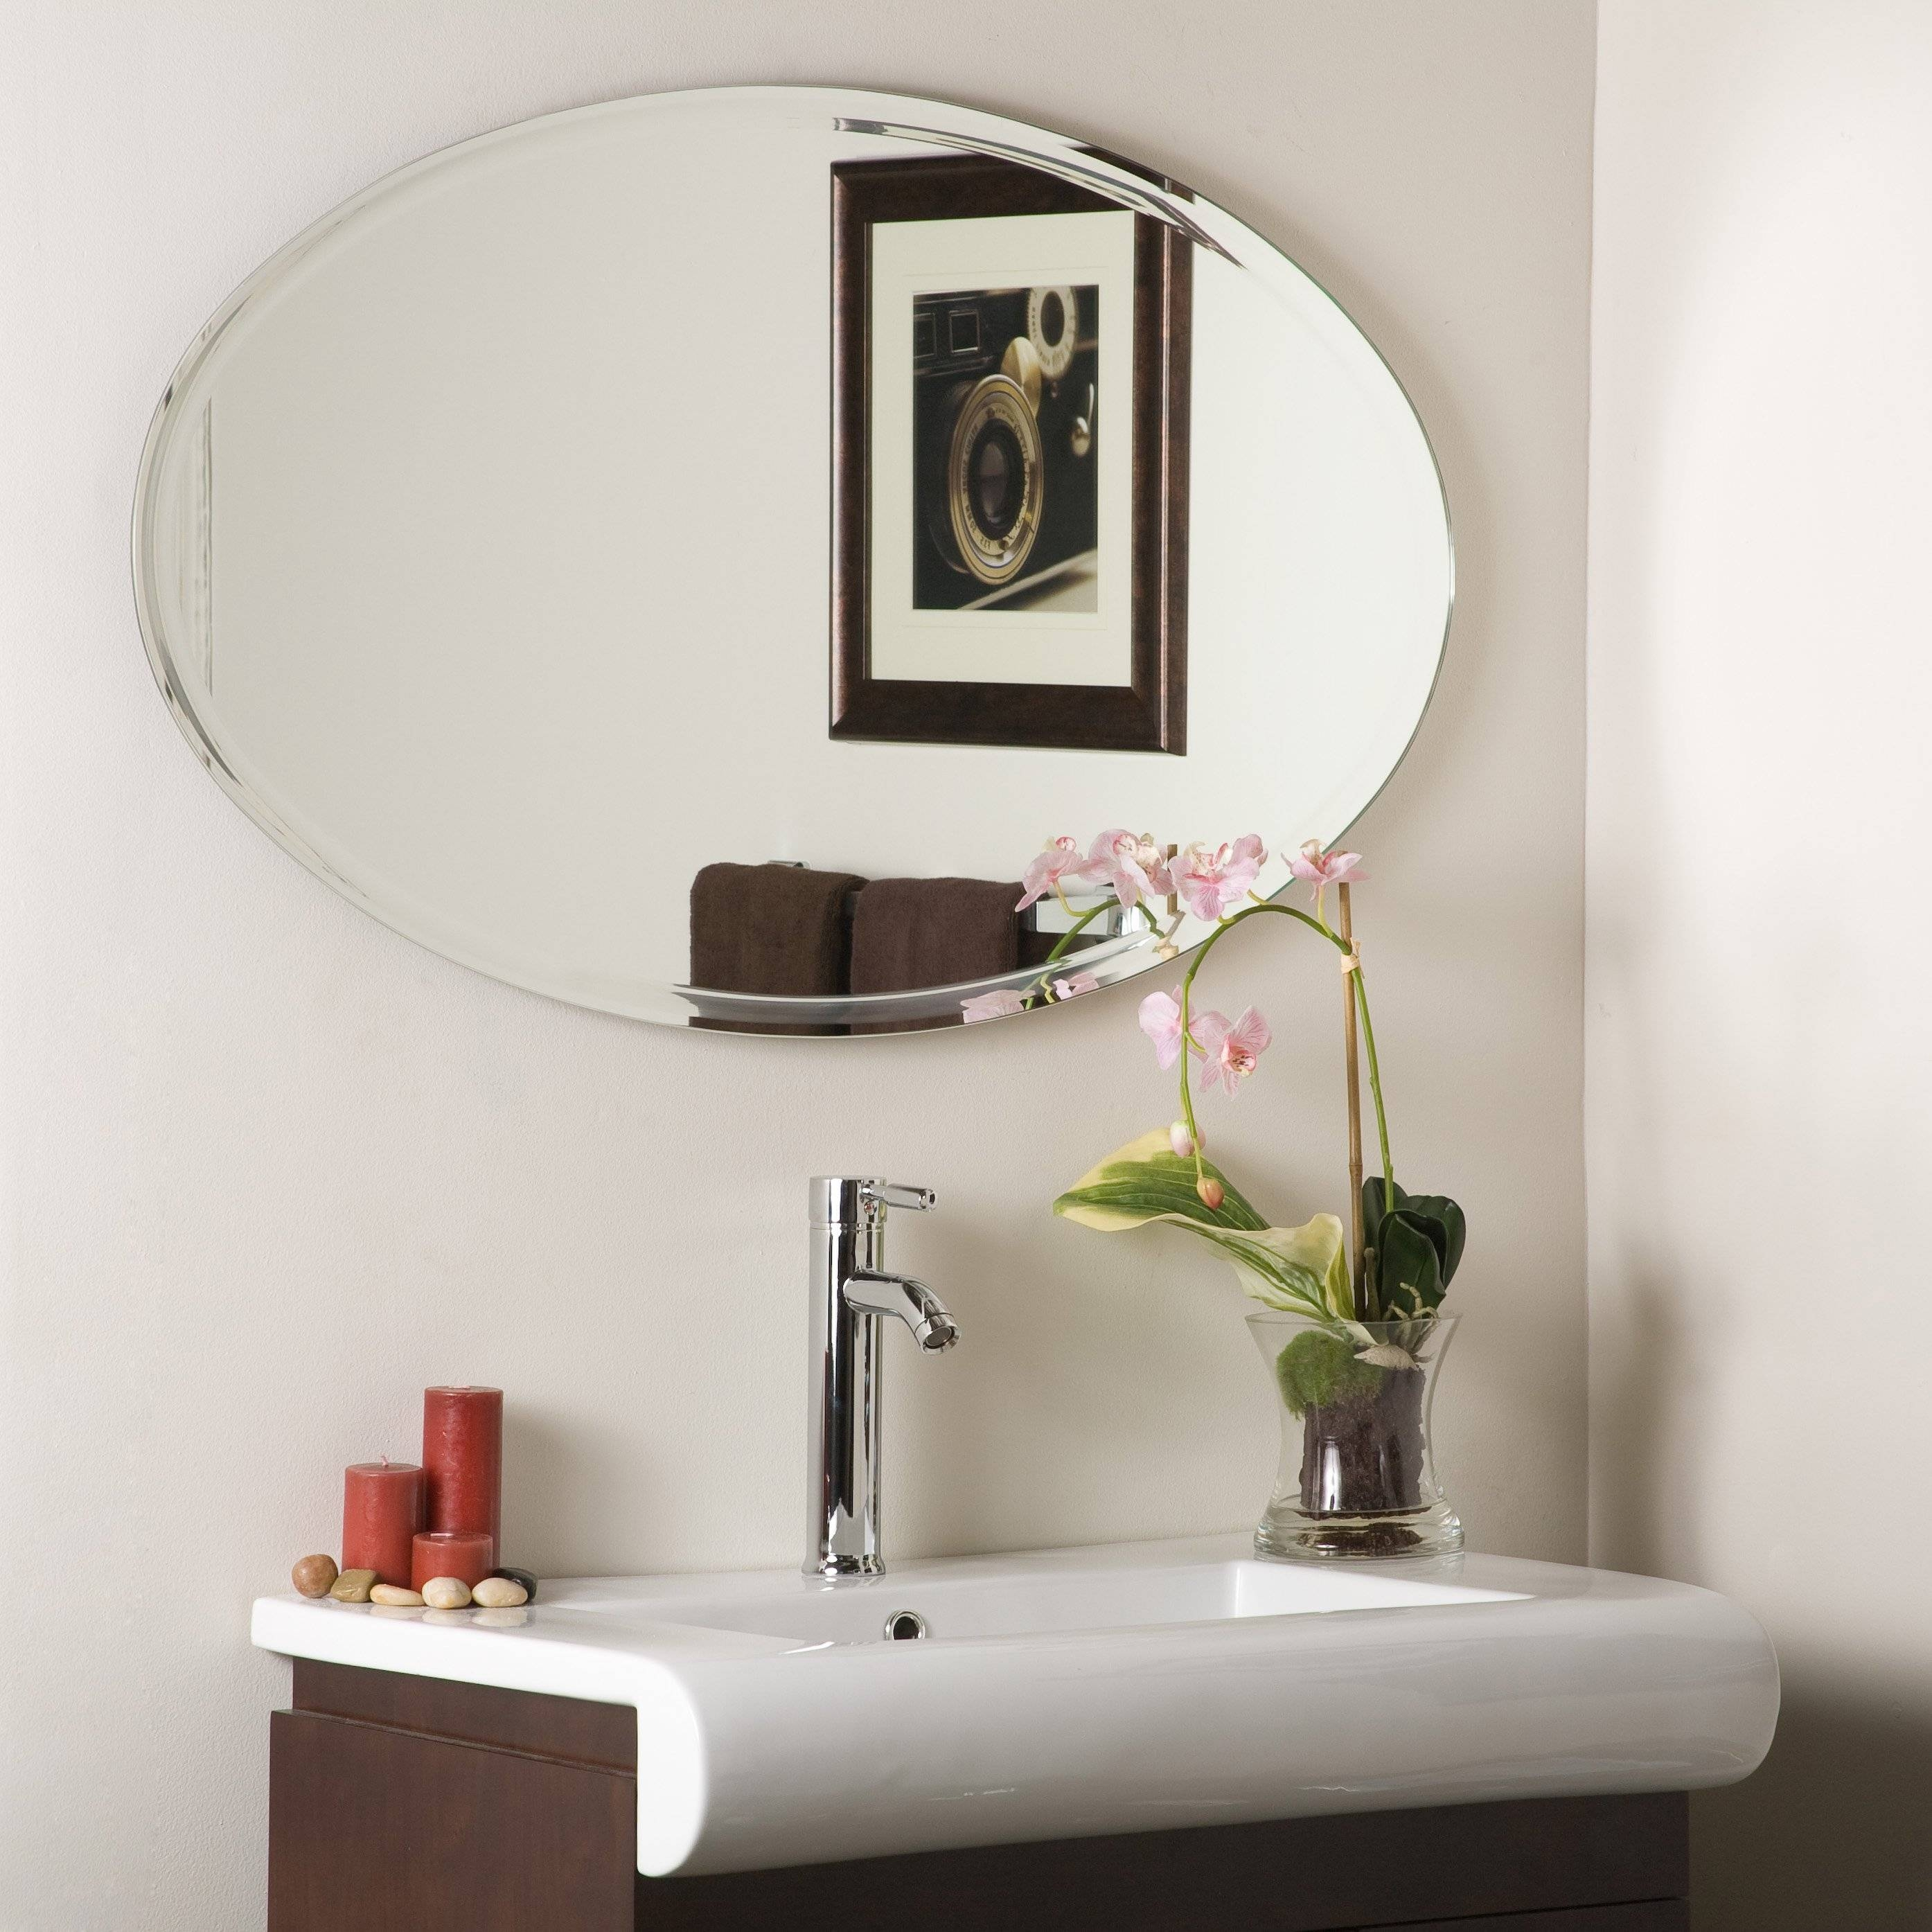 Decor Wonderland Extra Long Oval Wall Mirror - Beyond Stores pertaining to Long Oval Mirrors (Image 3 of 15)